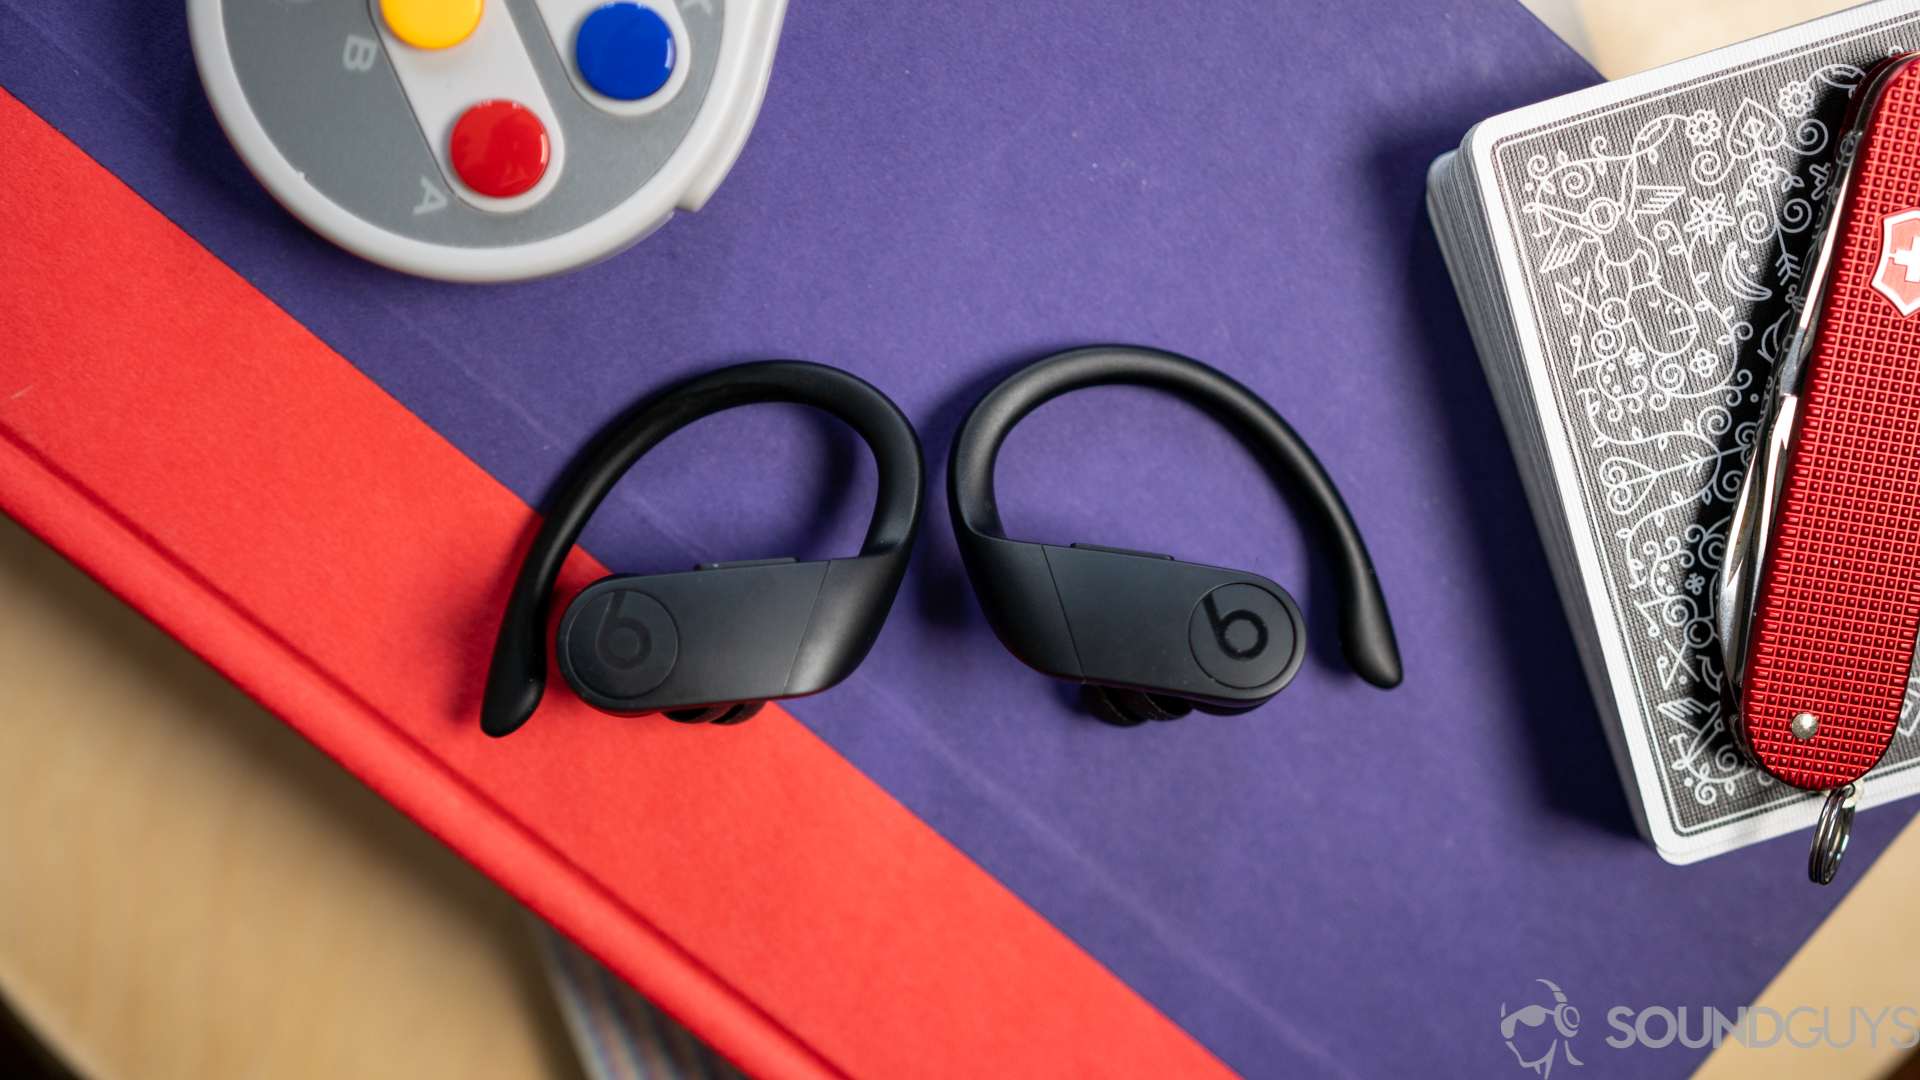 Apple Beats PowerBeats pro review: throw away your AirPods